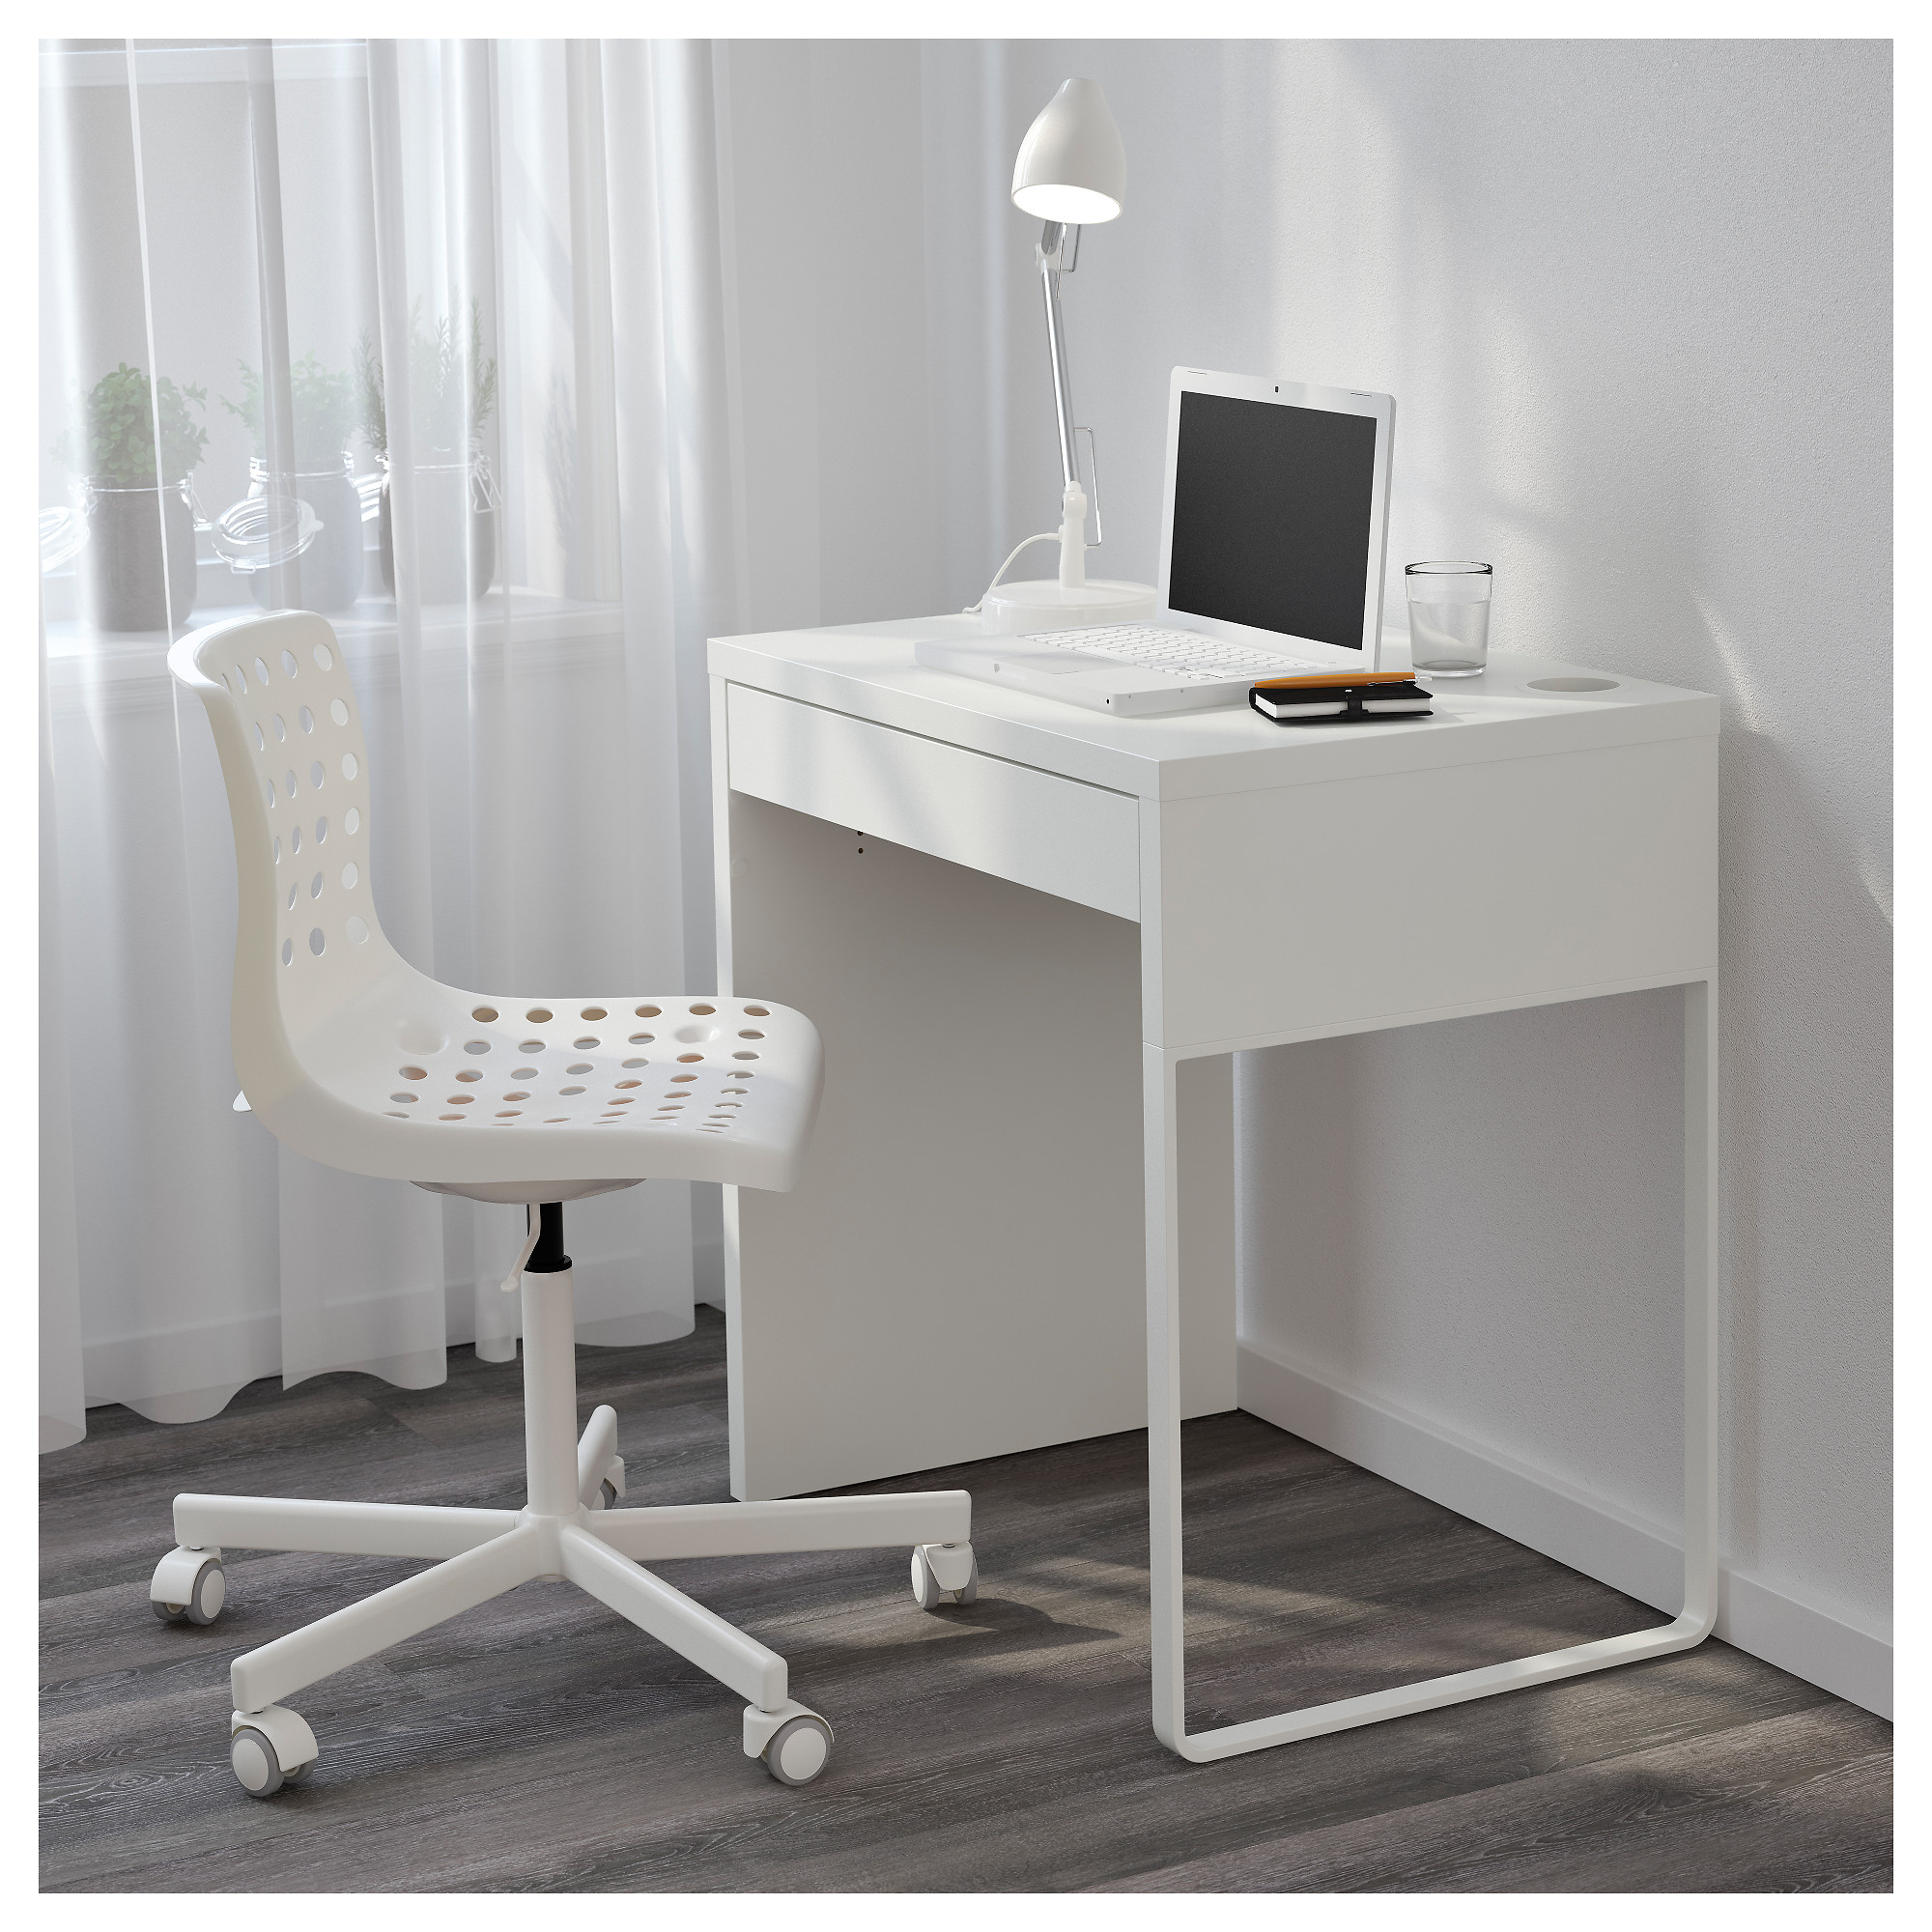 sale storage small puter computer office corner in for with file furniture white of home desk fresh drawer executive desks size workstation full fice long table mobile pc compact drawers hutch and cheap